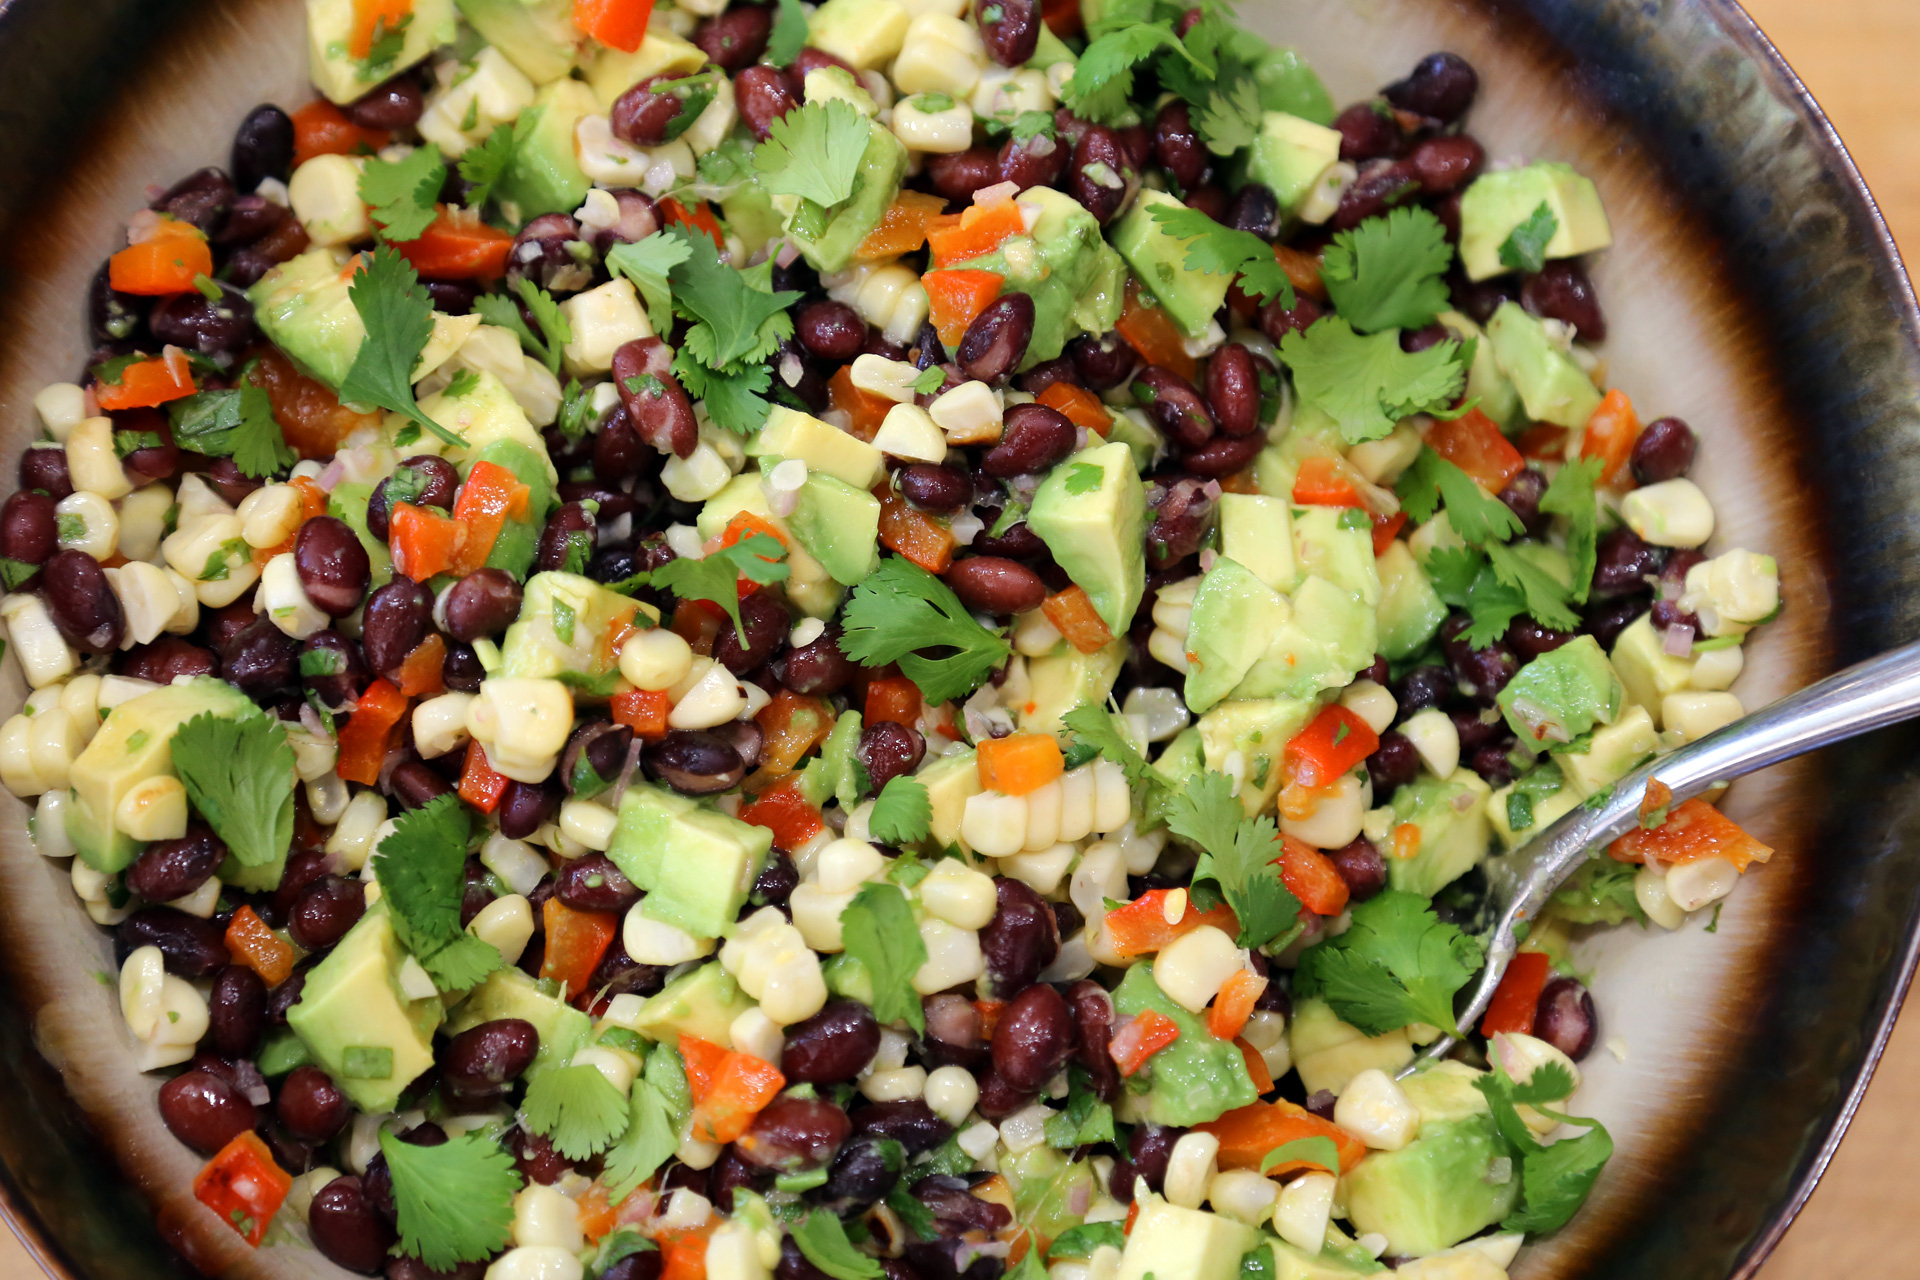 Garnish with more cilantro and serve the Grilled Corn, Red Pepper, Black Bean and Avocado Salad with Cilantro Vinaigrette